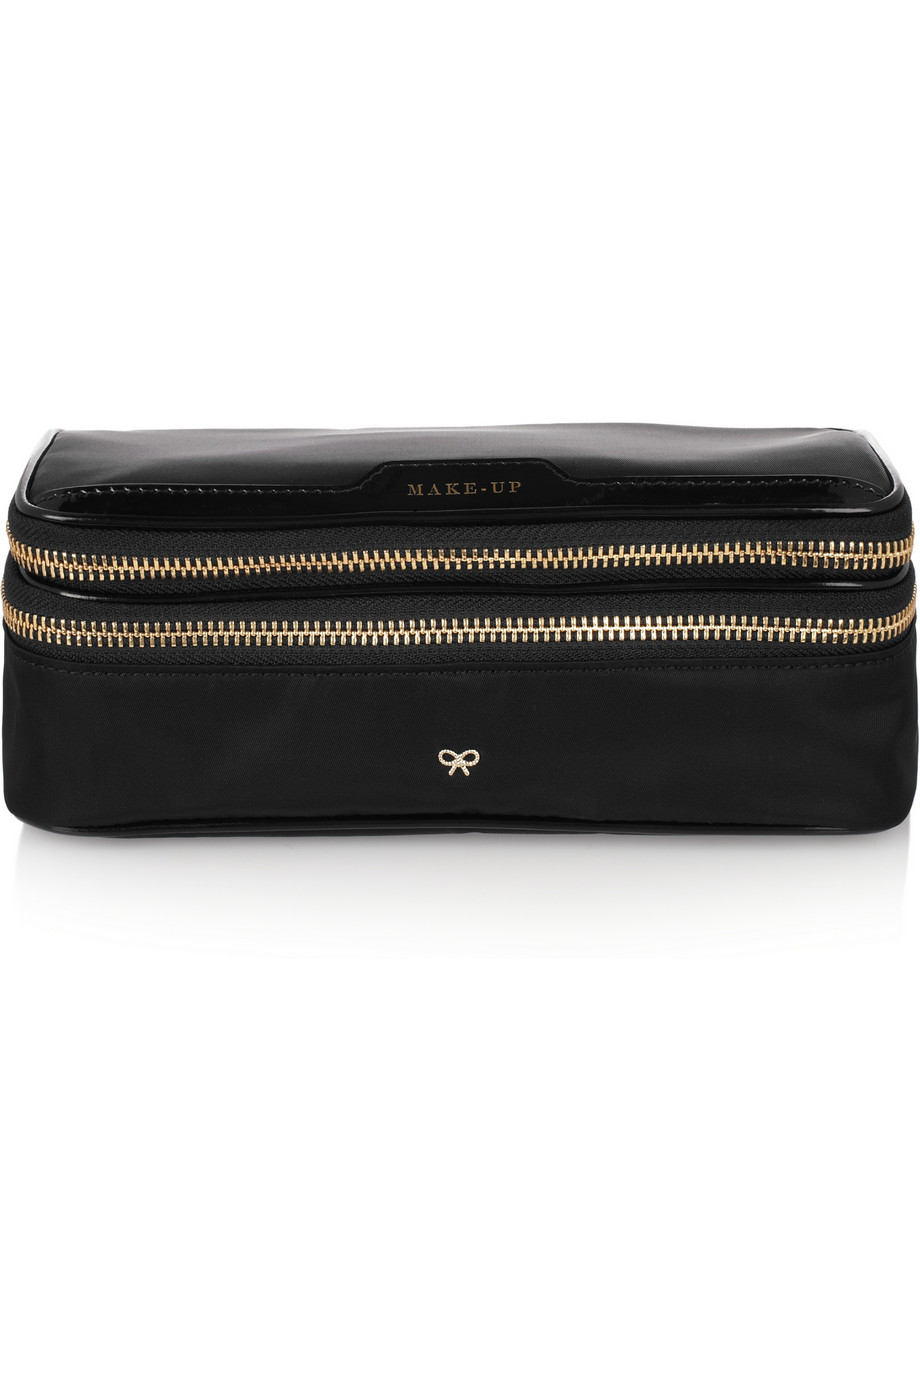 Make Up Leather-trimmed Shell Cosmetics Case - Black Anya Hindmarch zDP8IGFDt